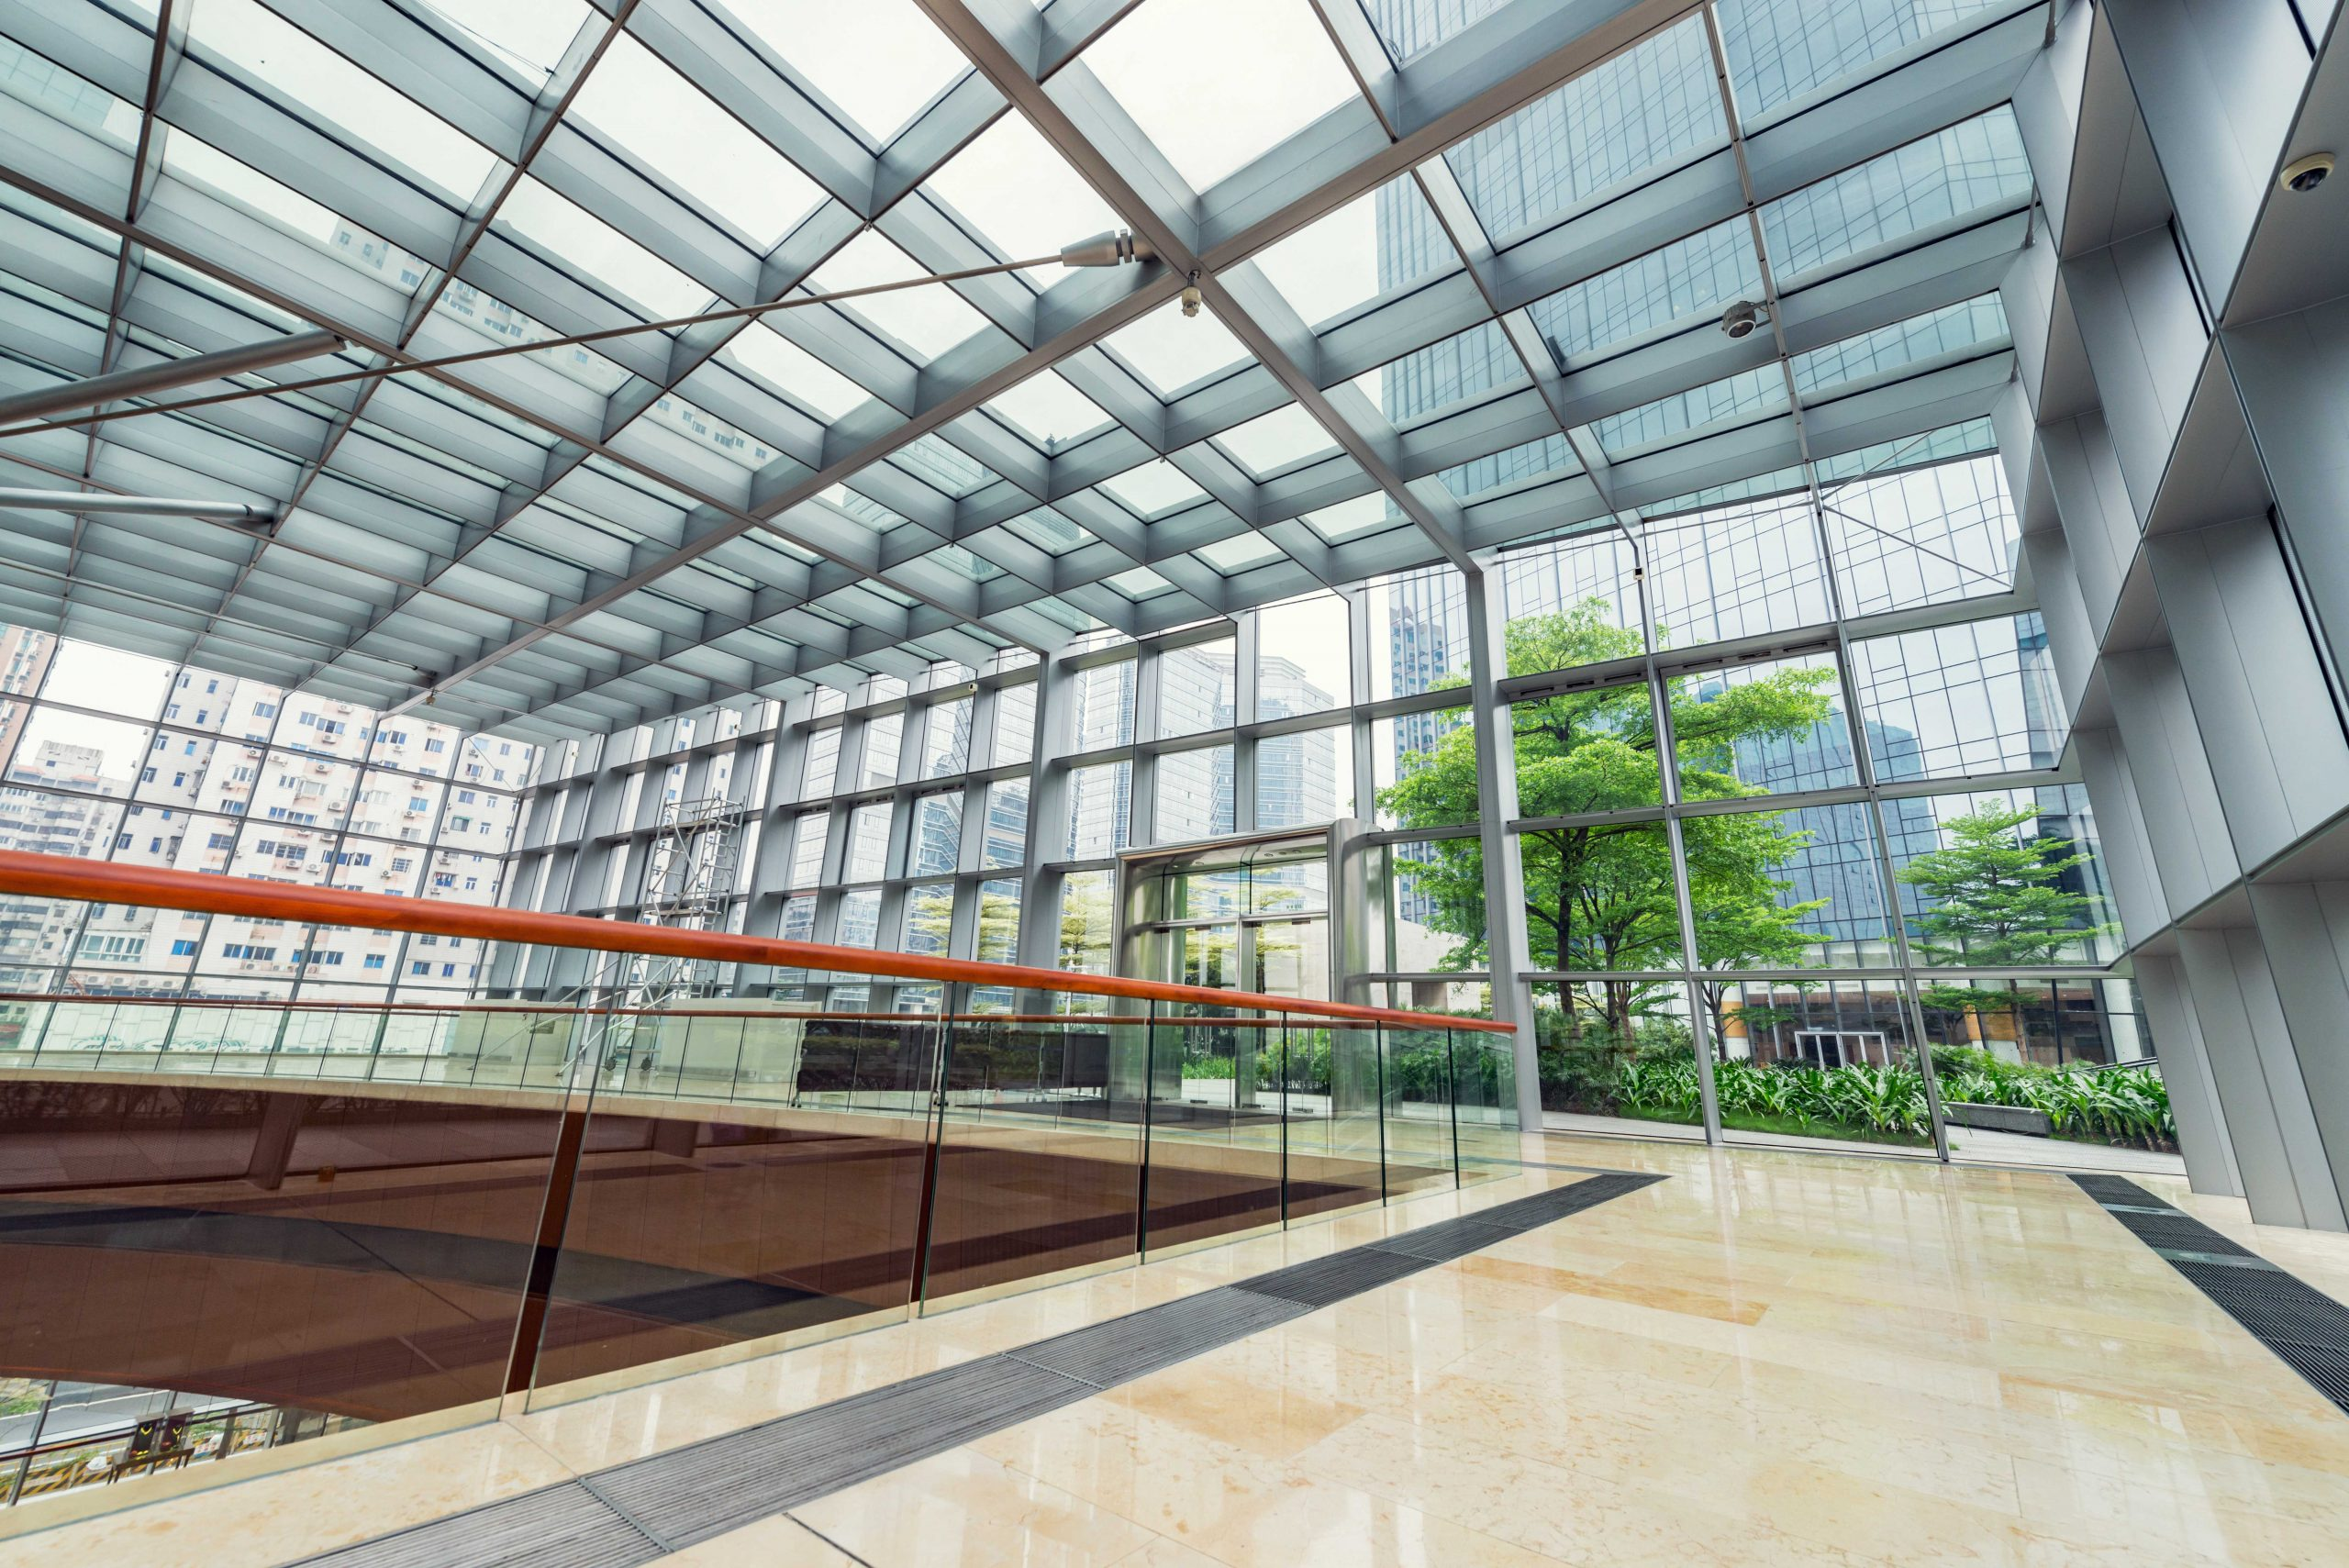 A building that was built to meet LEED certification specifications